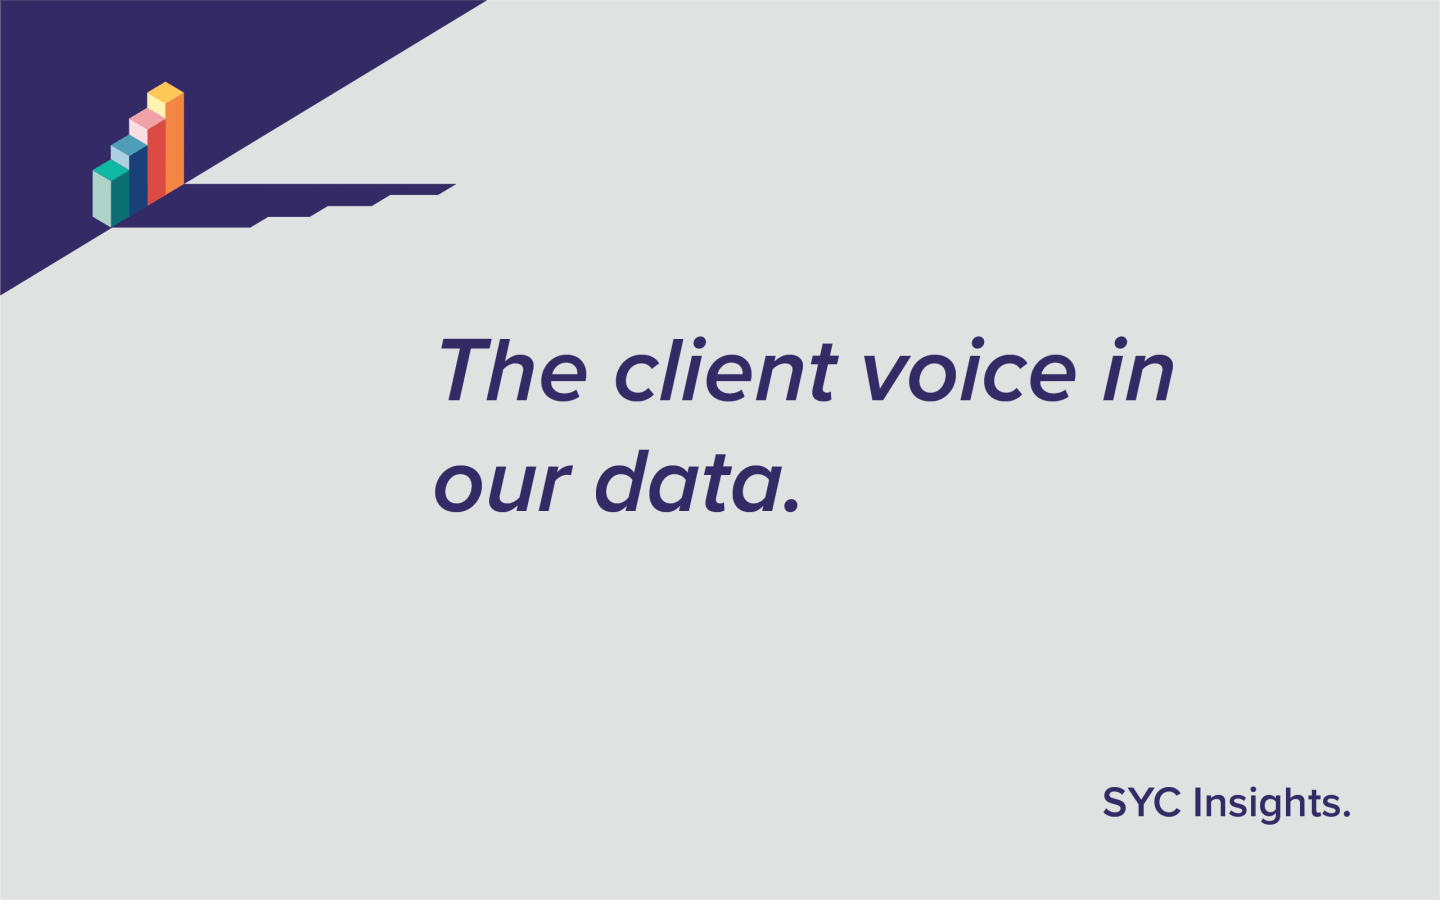 The client voice in our data - SYC Insights